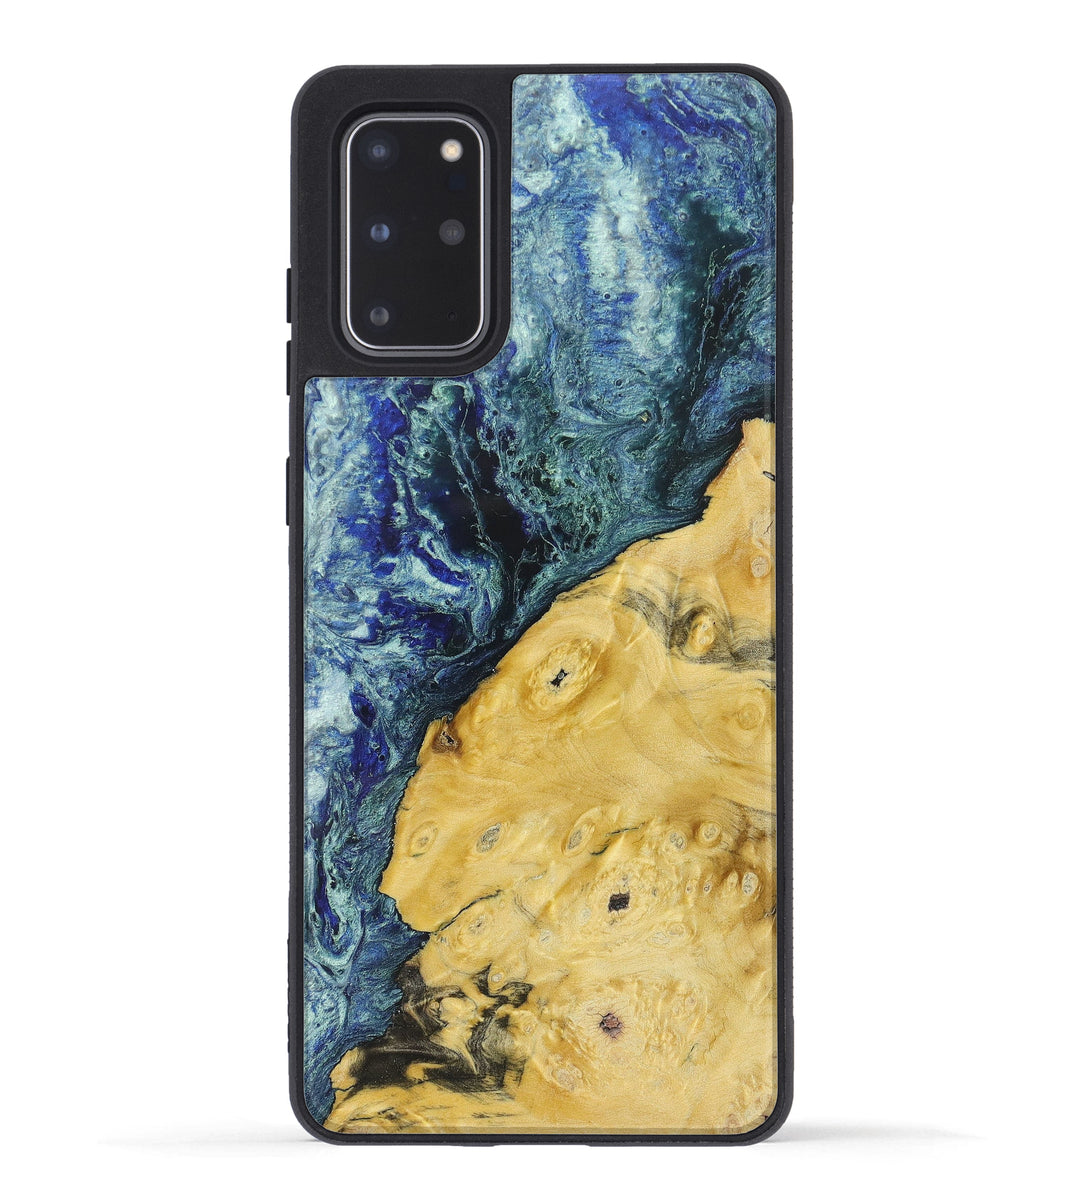 Galaxy S20 Plus Wood+Resin Phone Case - Rici (Dark Blue, 349368)